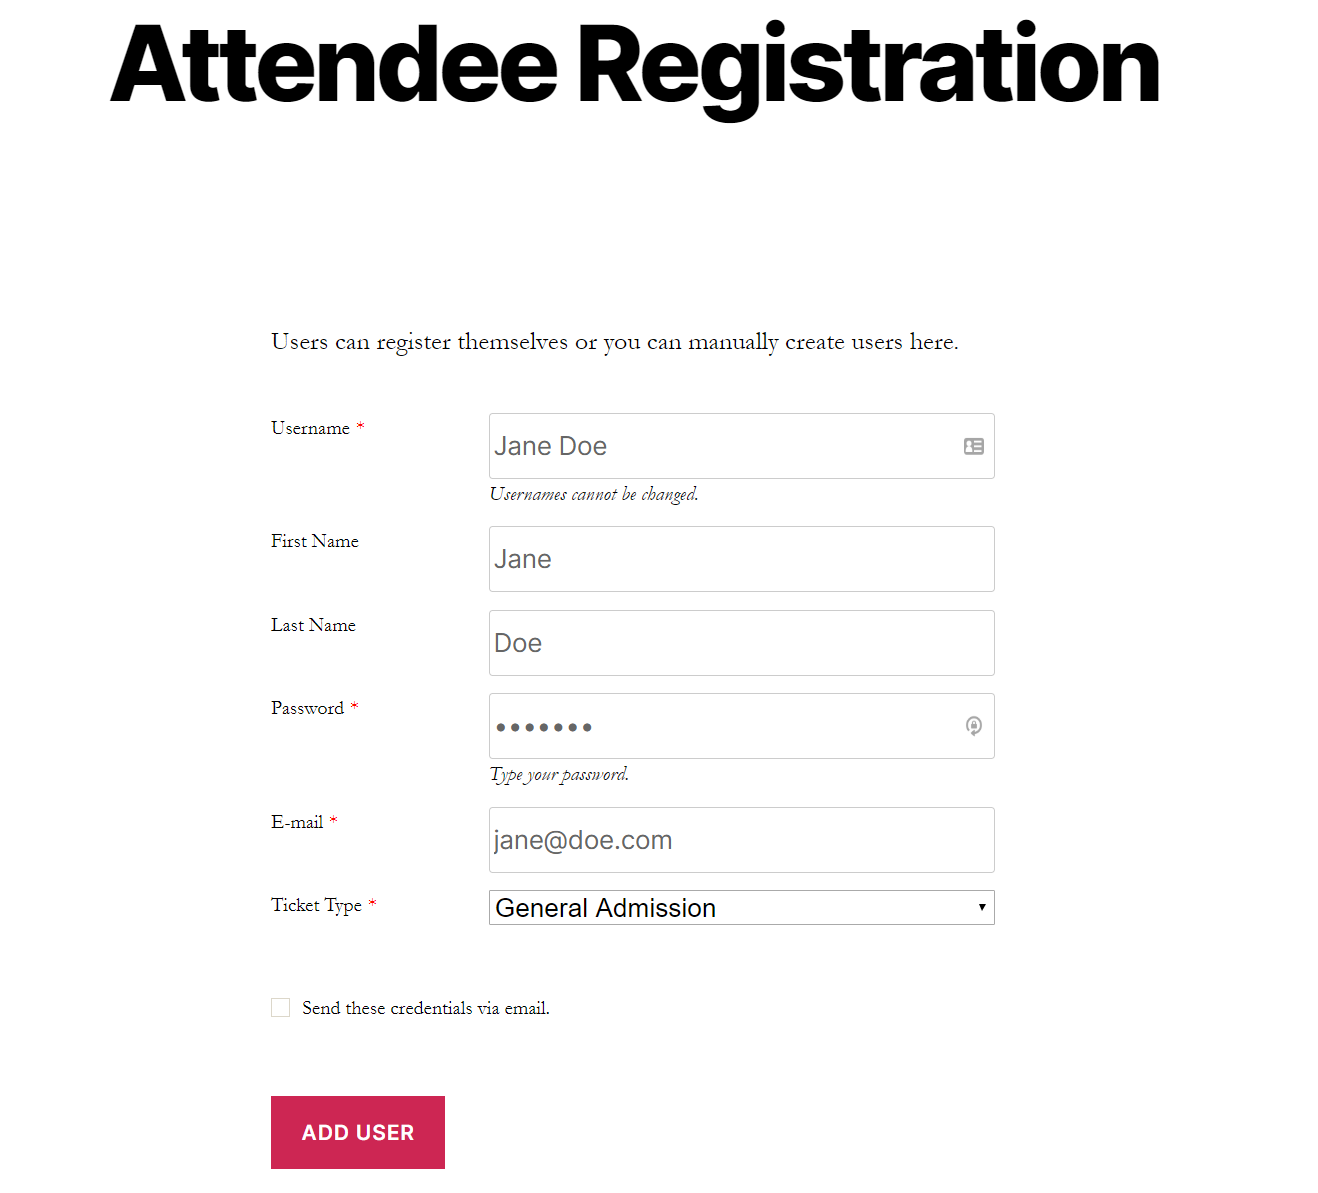 Preview of a user registration form